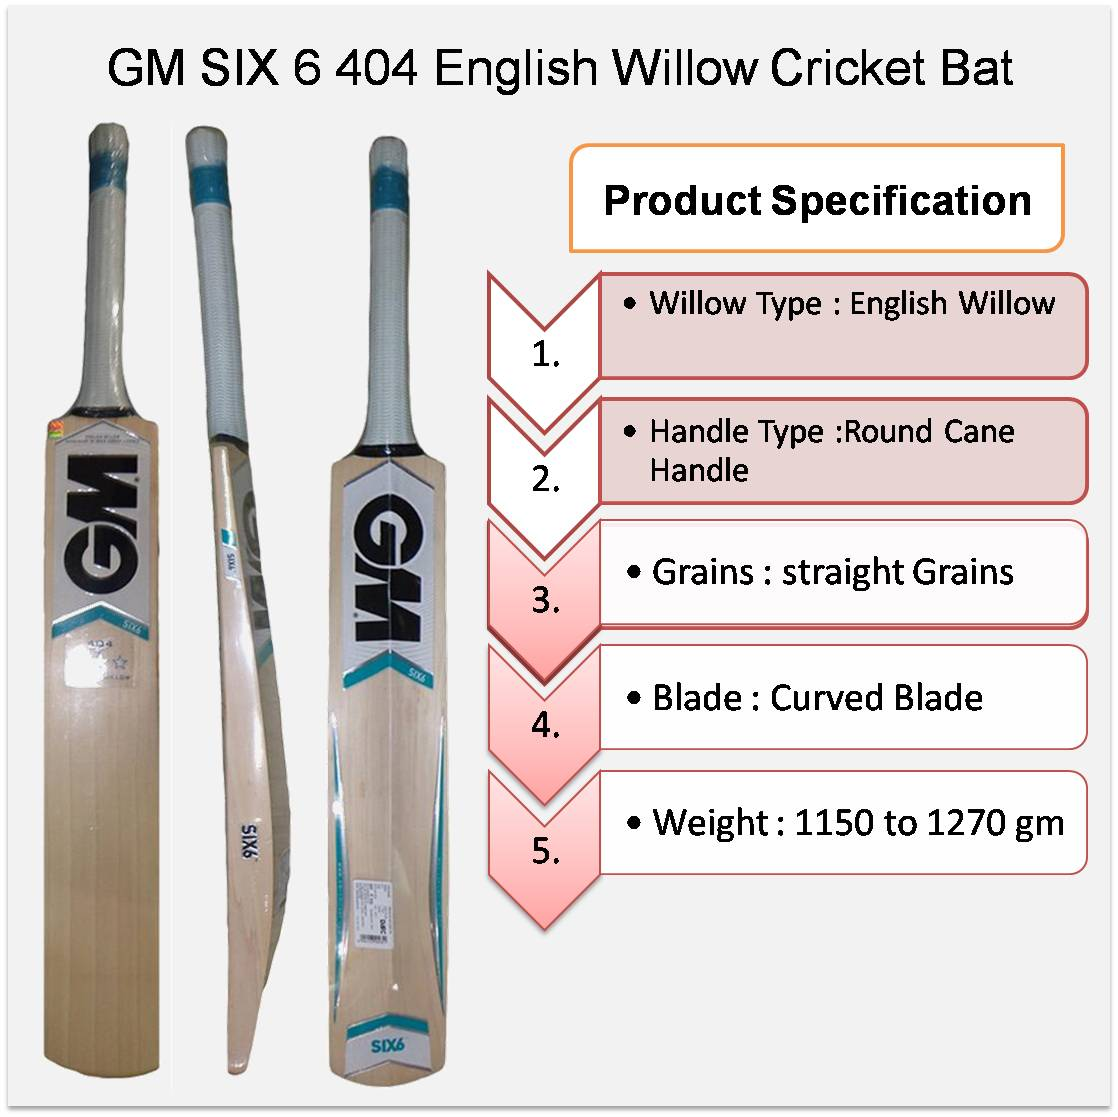 GM SIX 6 404 English Willow Cricket Bat